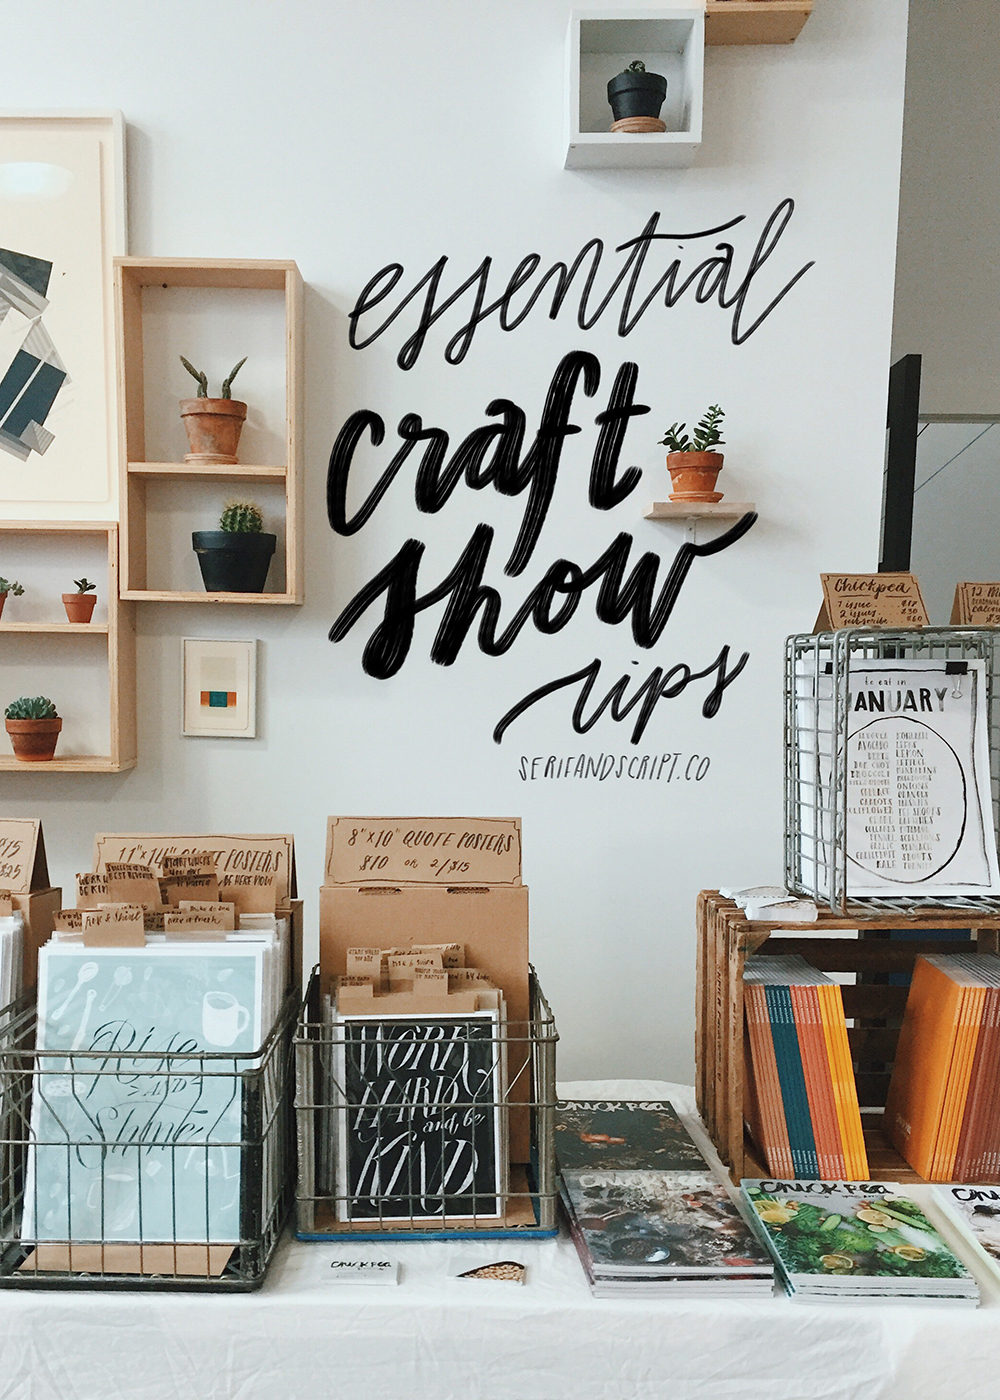 Essential Craft Show Tips (with display ideas!)